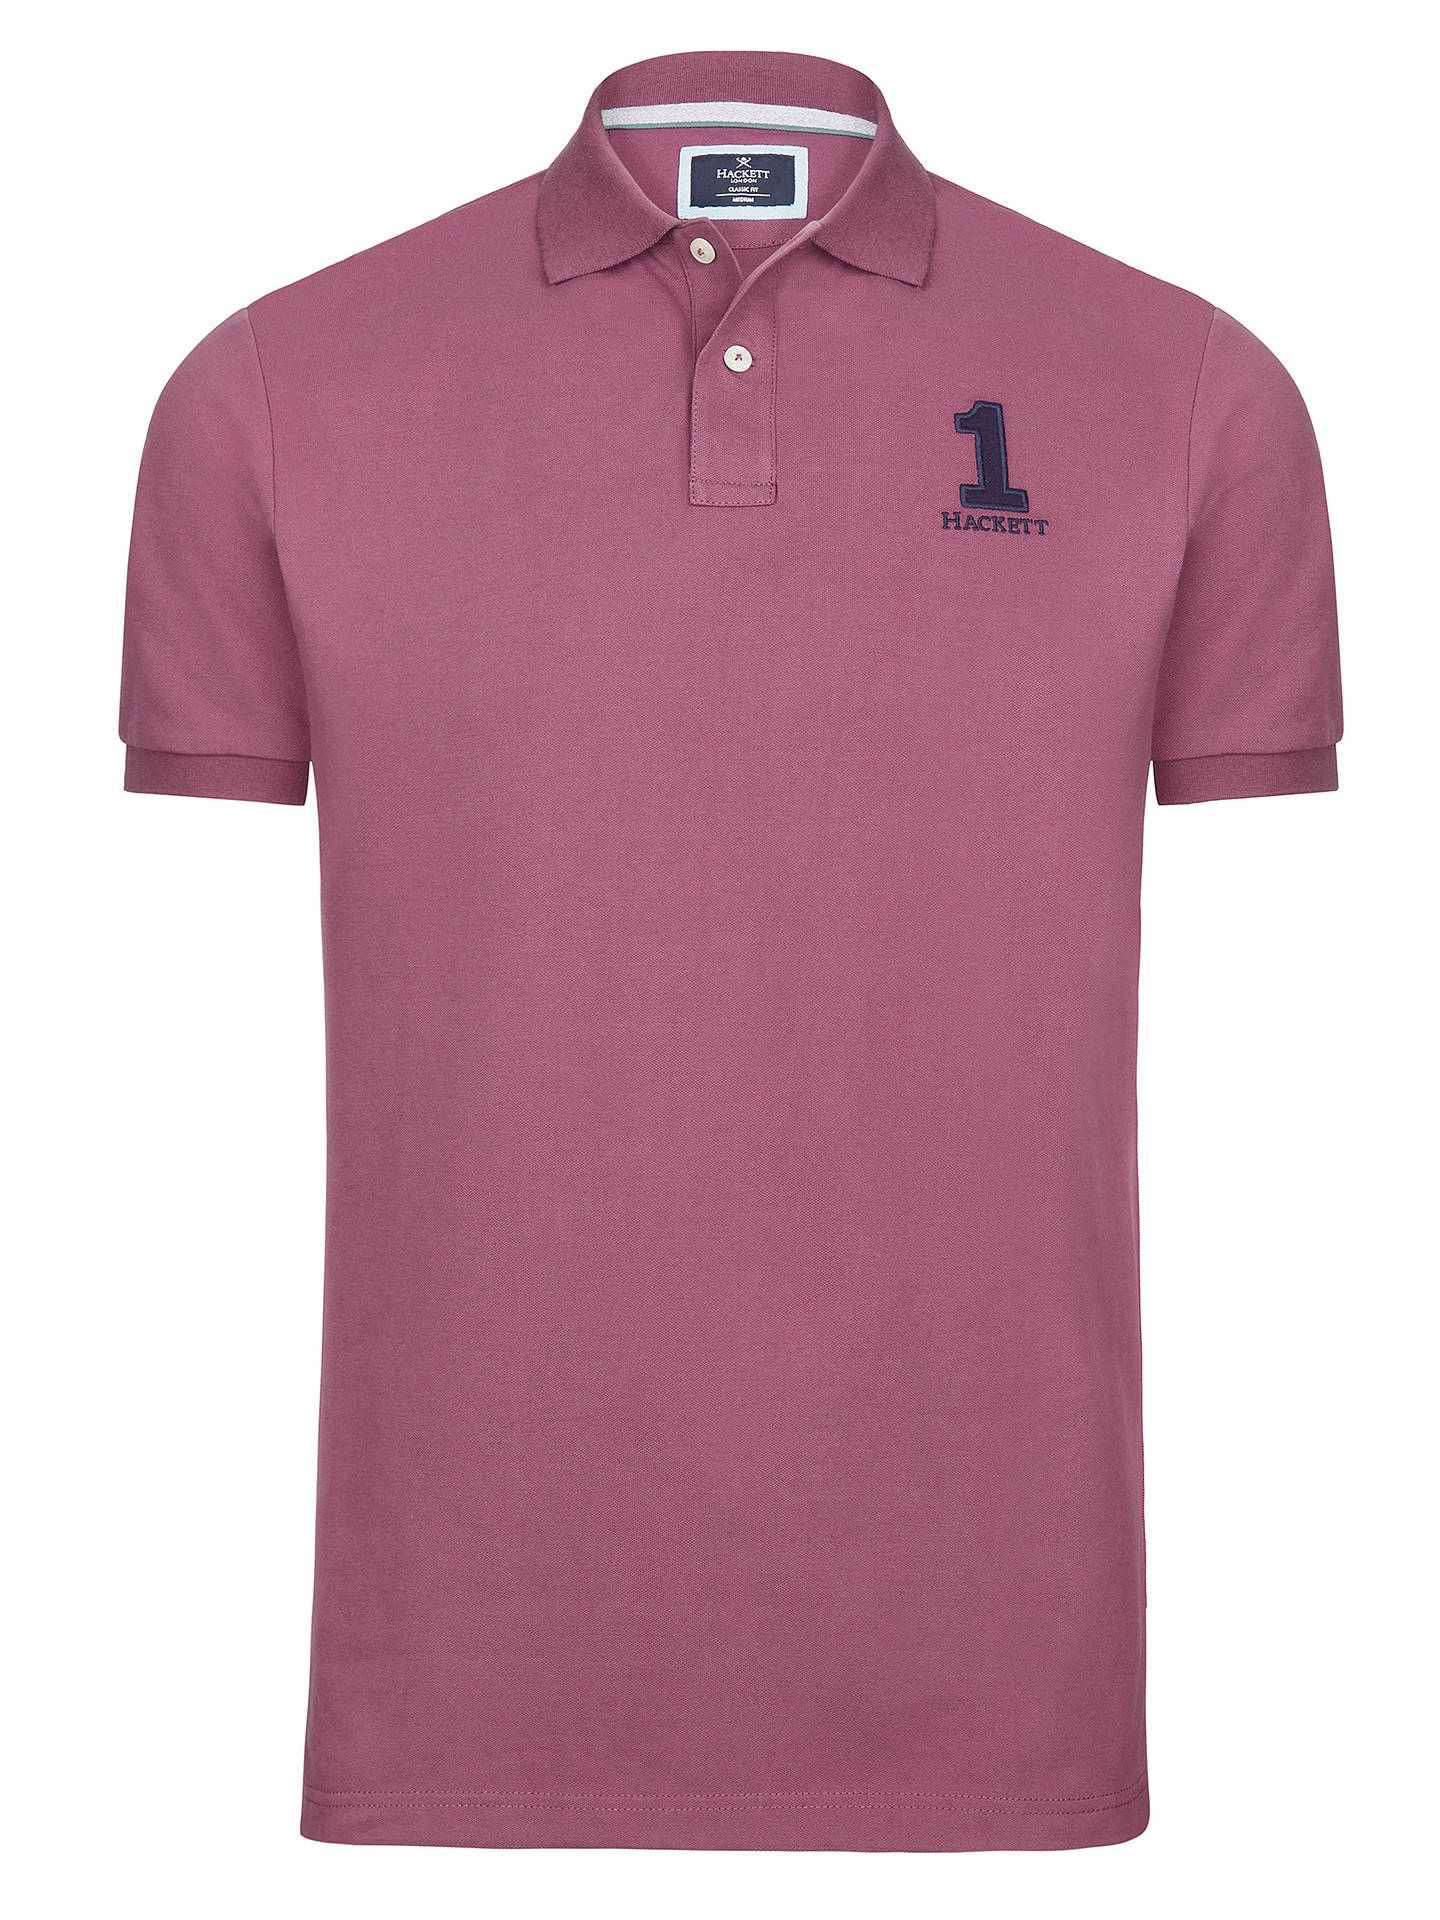 BuyHackett London New Classic Polo, Plum, S Online at johnlewis.com